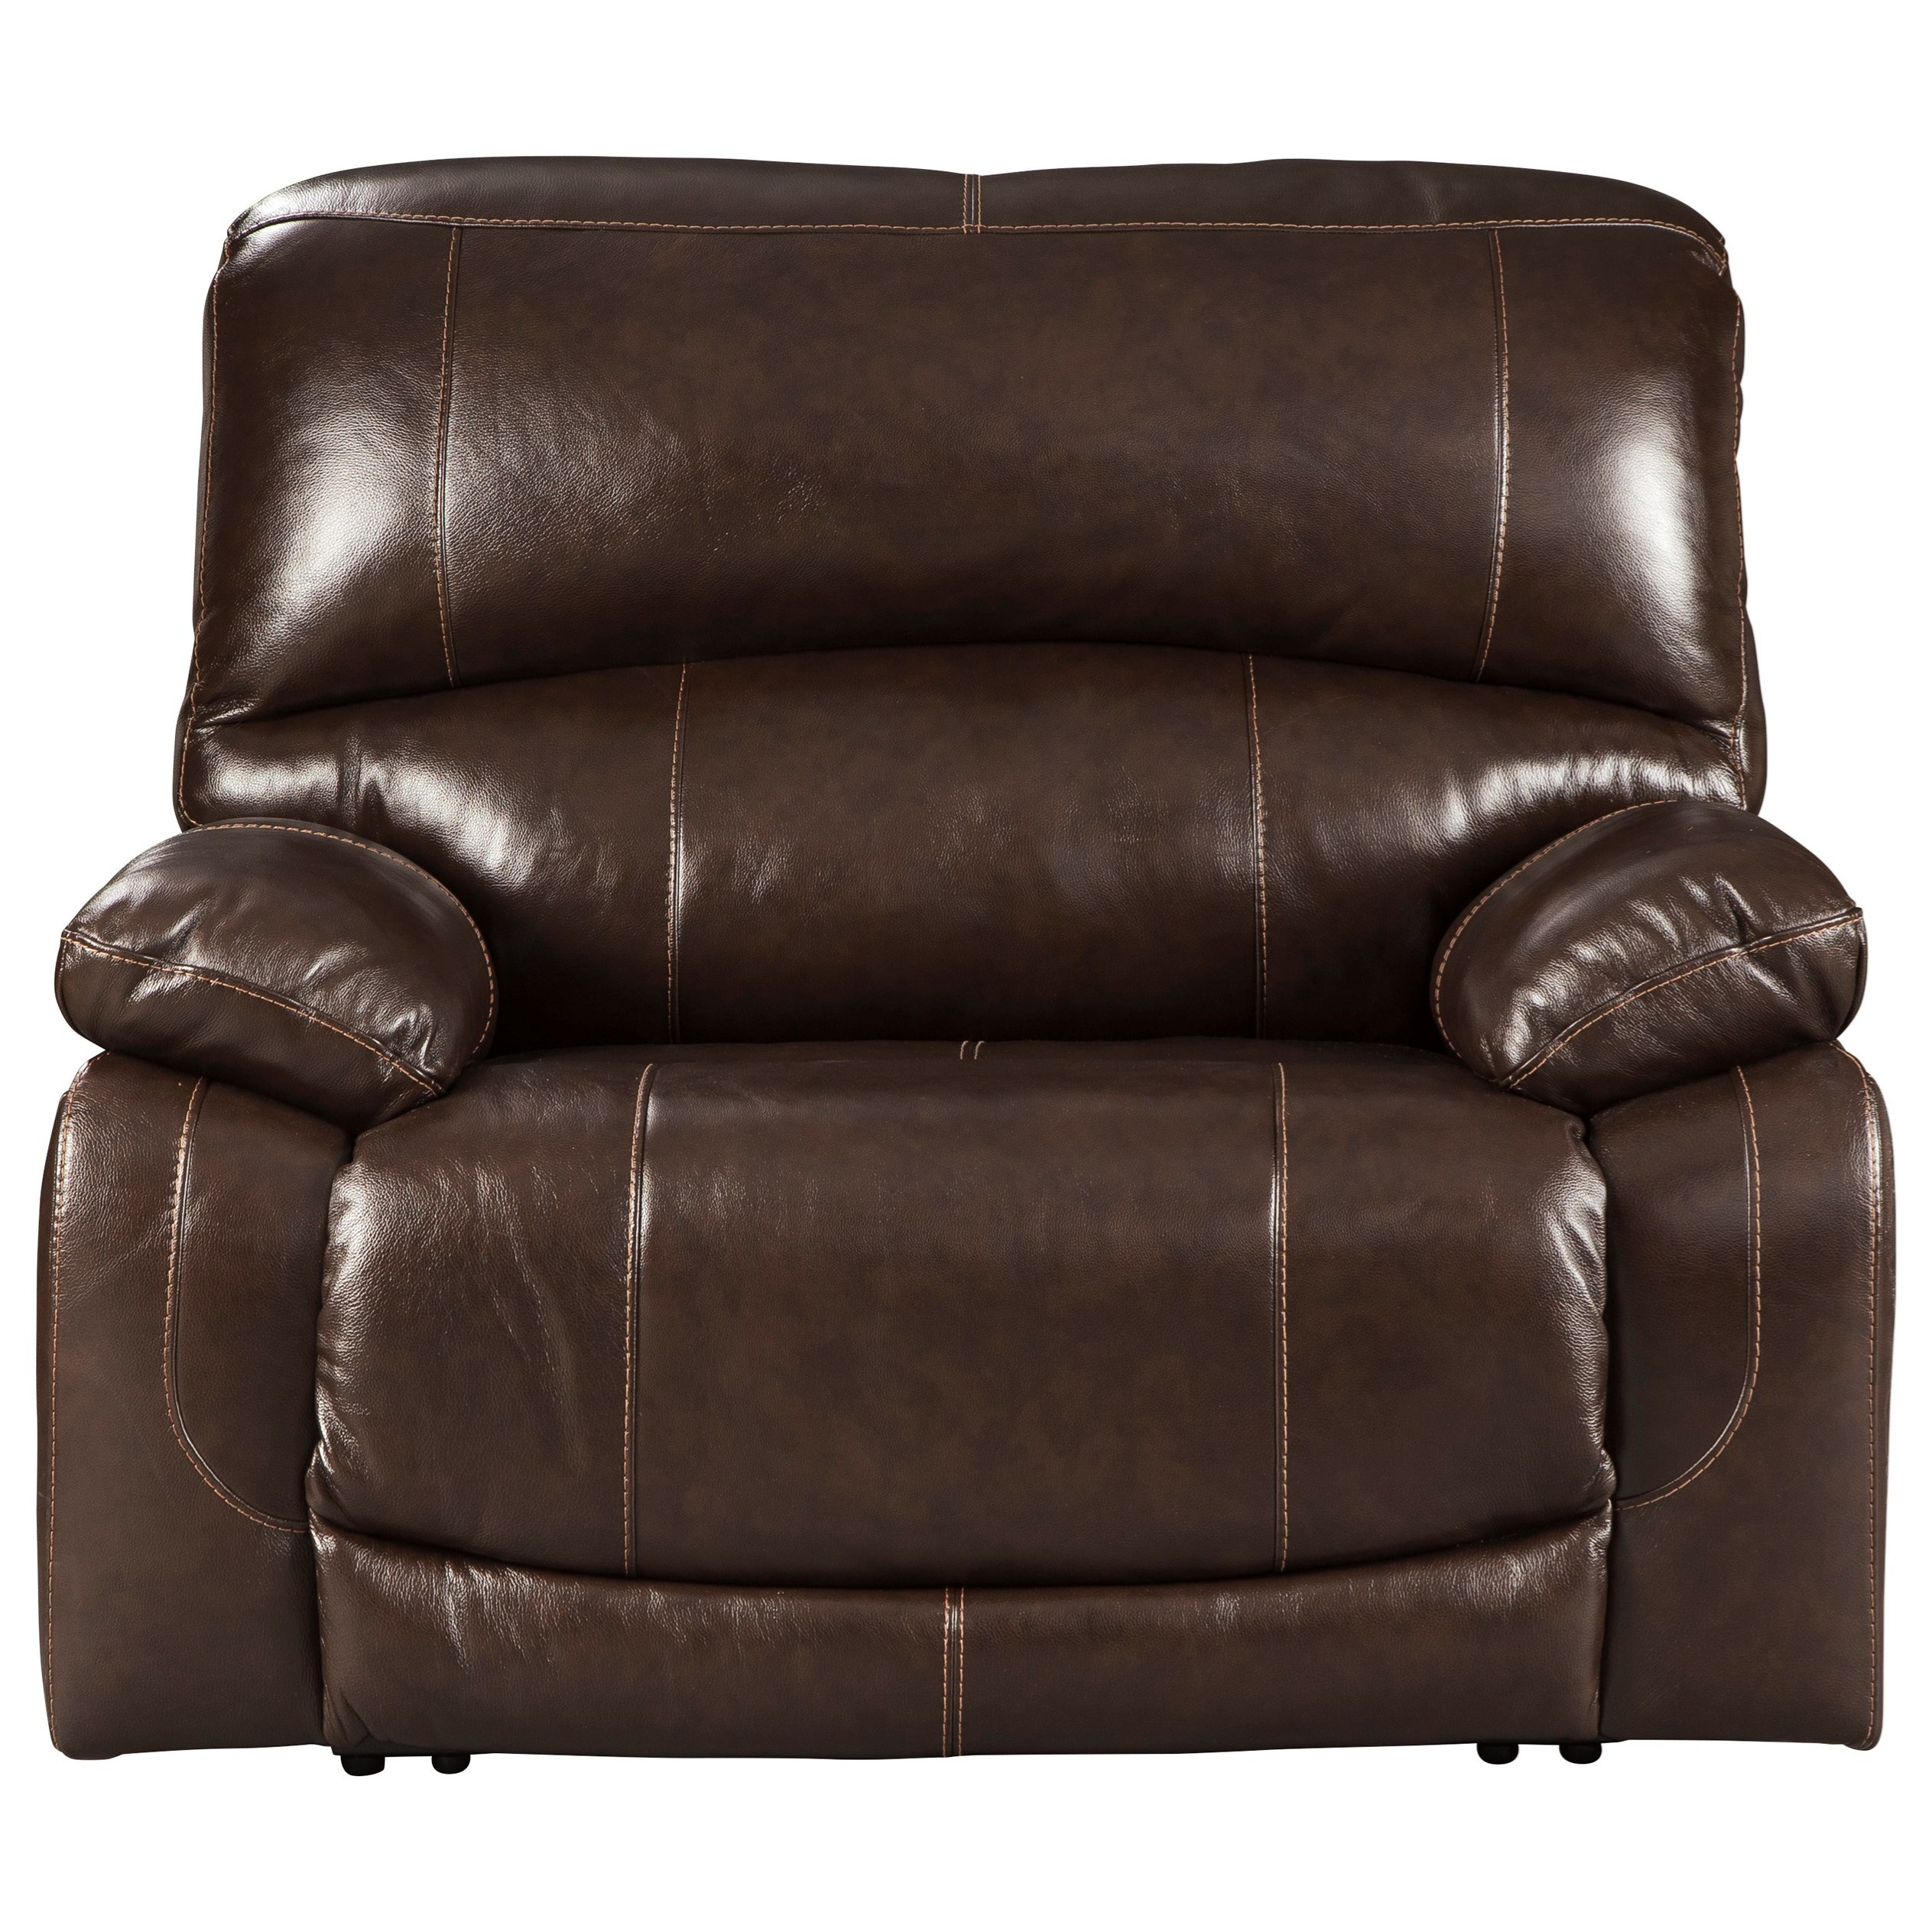 Hallstrung Zero Wall Power Wide Recliner by Ashley (Signature Design) at Johnny Janosik